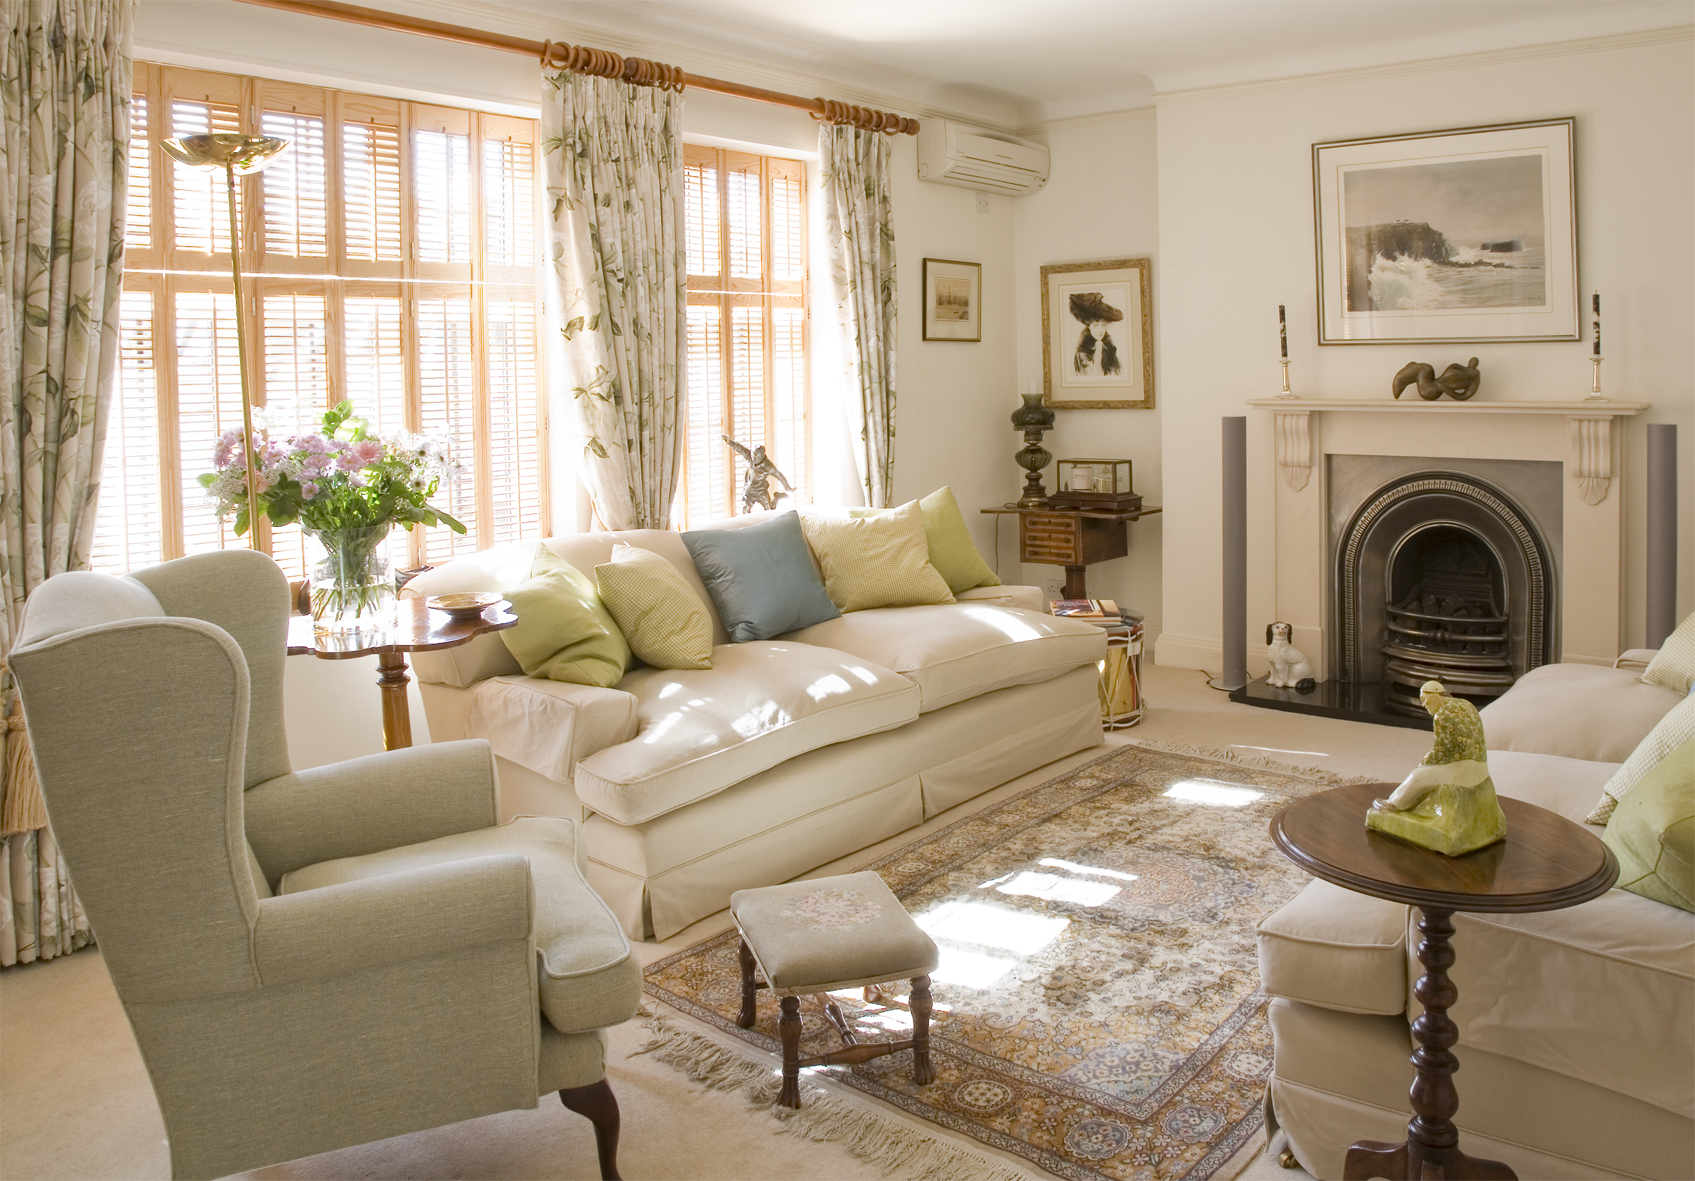 old english living room designs set interior design country cottages news wilkinskennedy com u2022 rh cottage interiors autumn